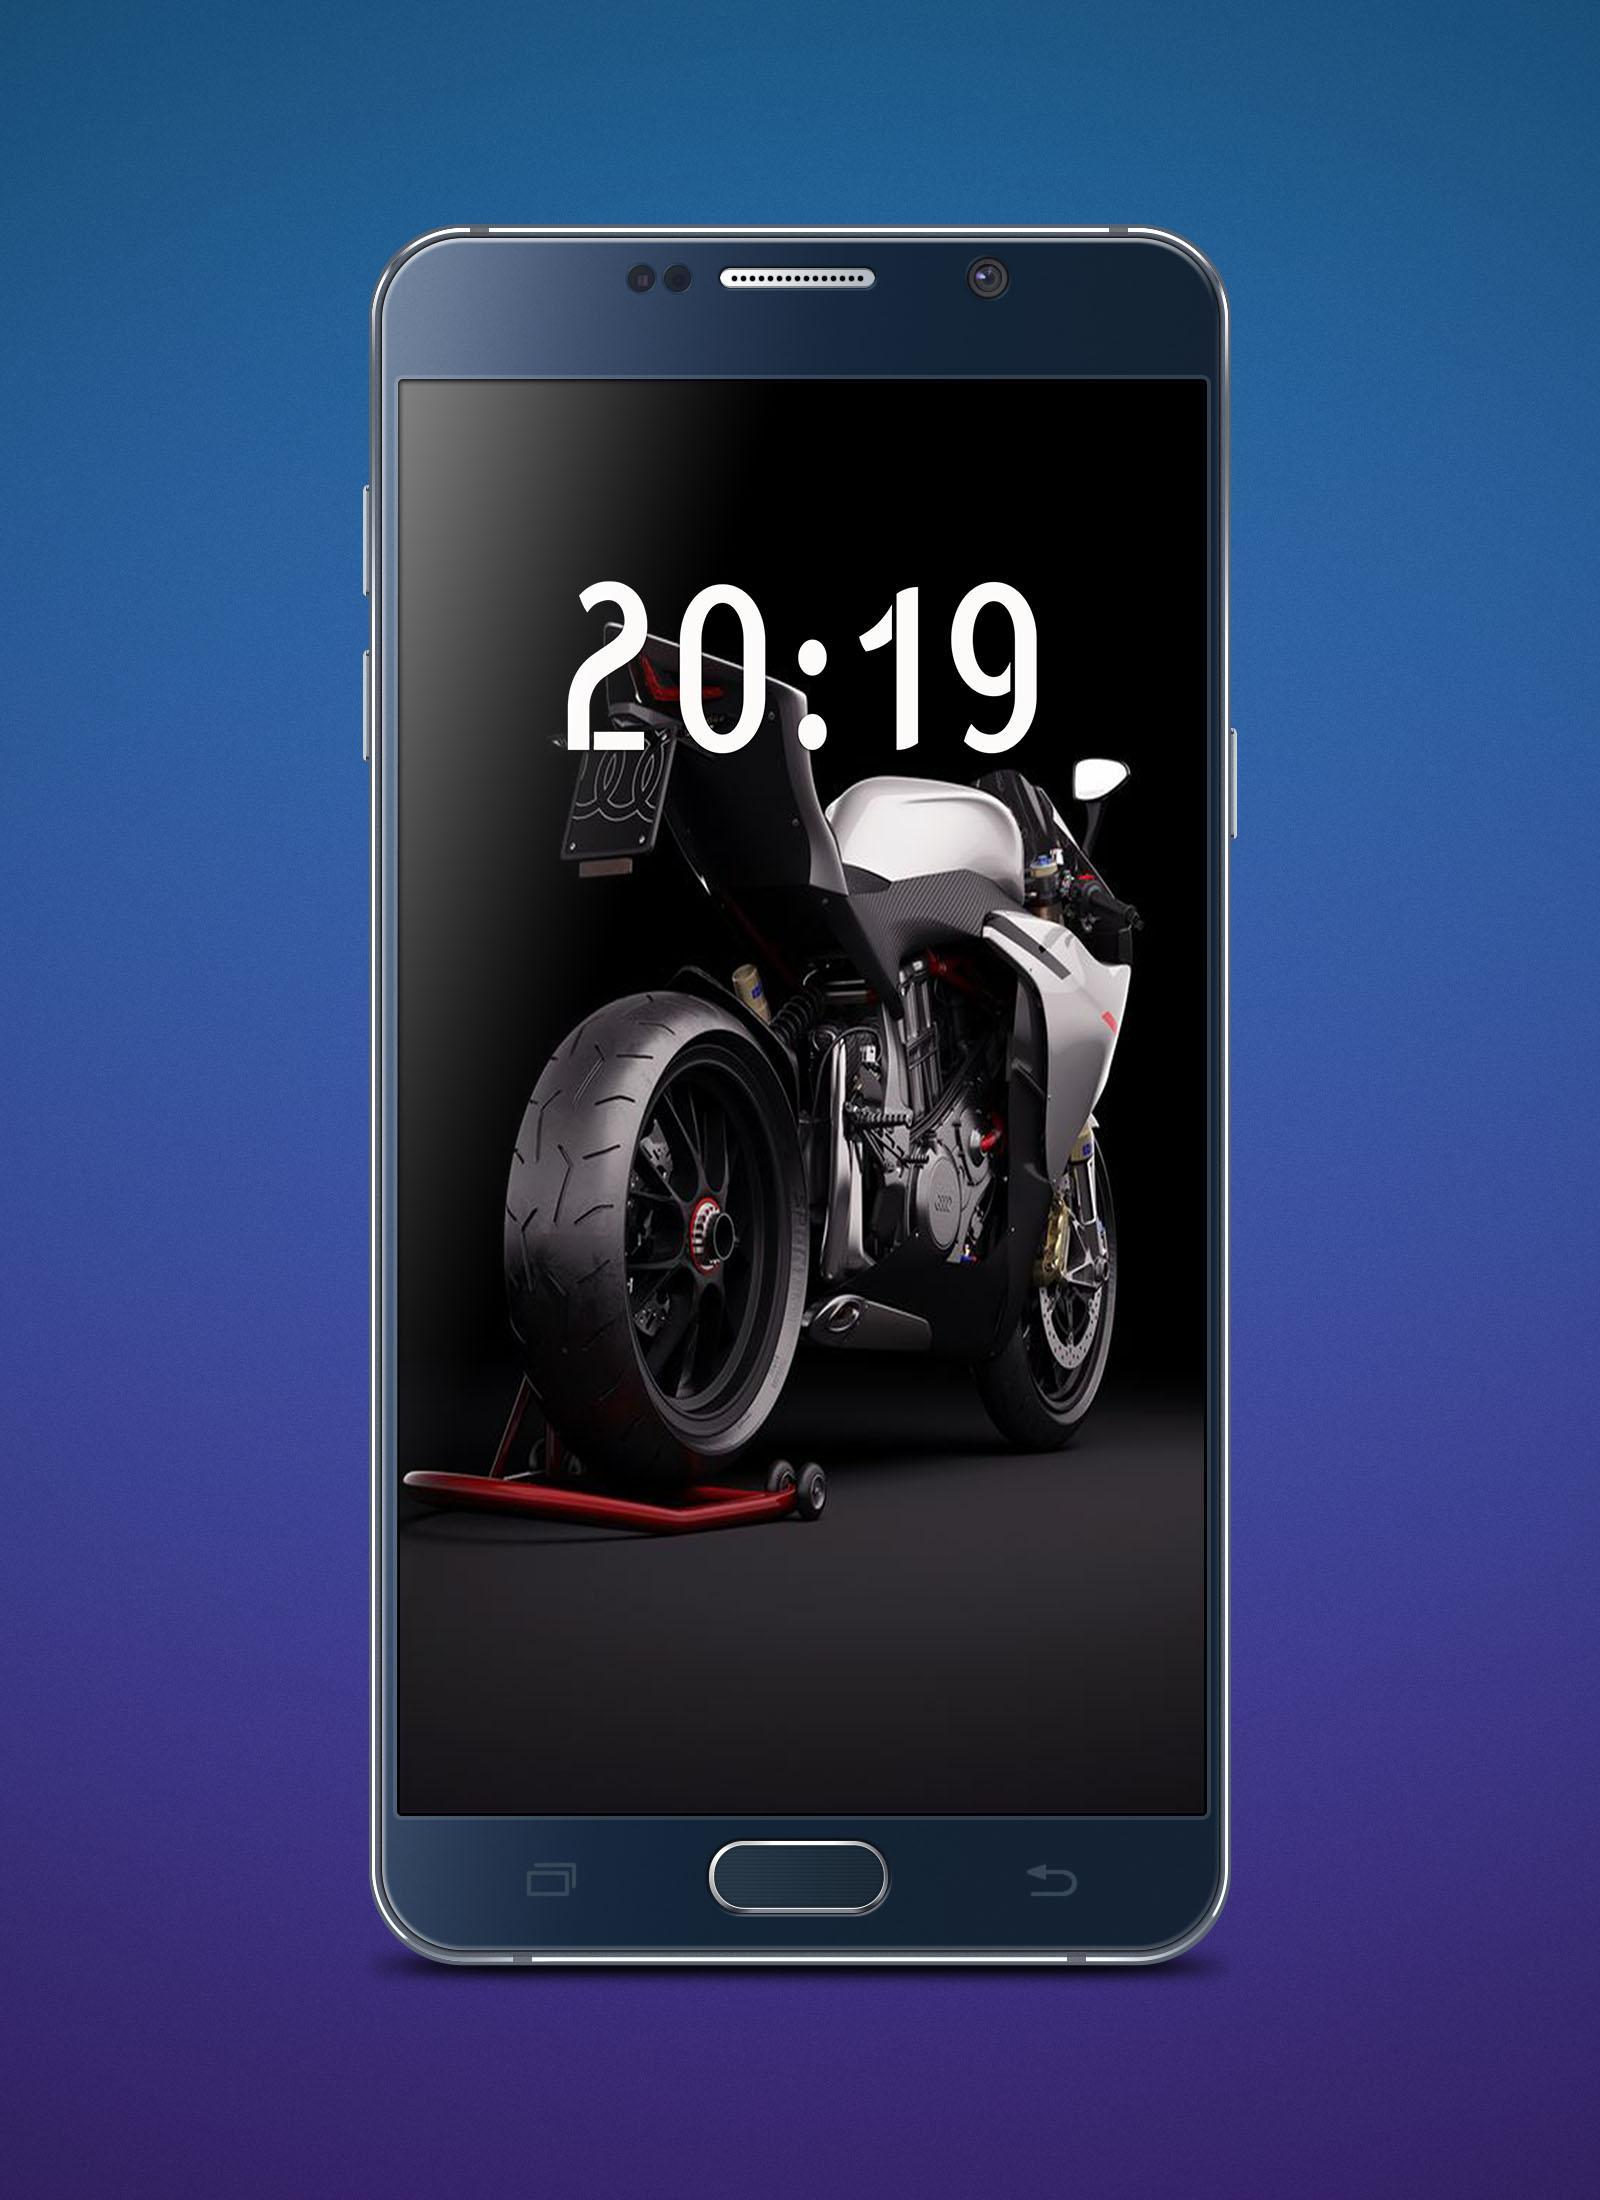 Sports Bike Wallpaper For Android Apk Download